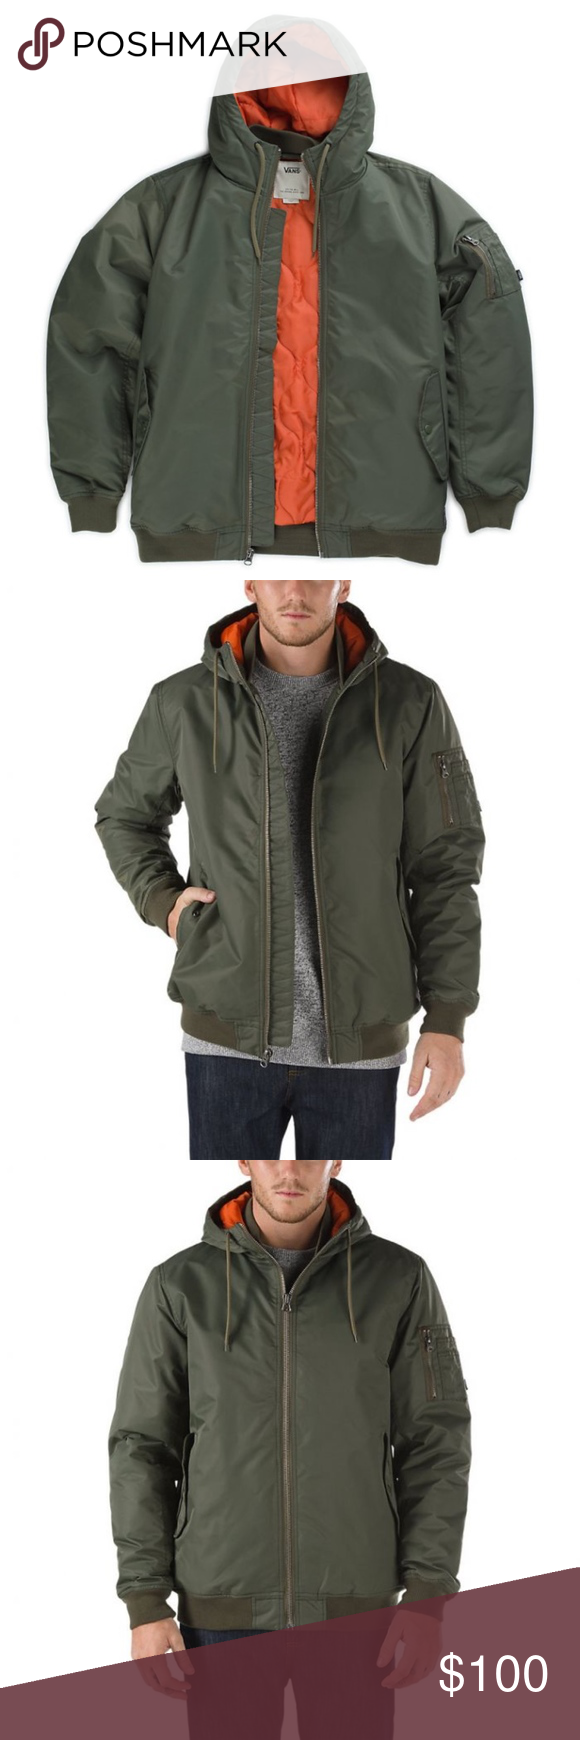 813d4f64c3a VANS Men s Kilroy Mountain Hooded Bomber Jacket XL From the Kilroy Mountain  Edition Jacket is an